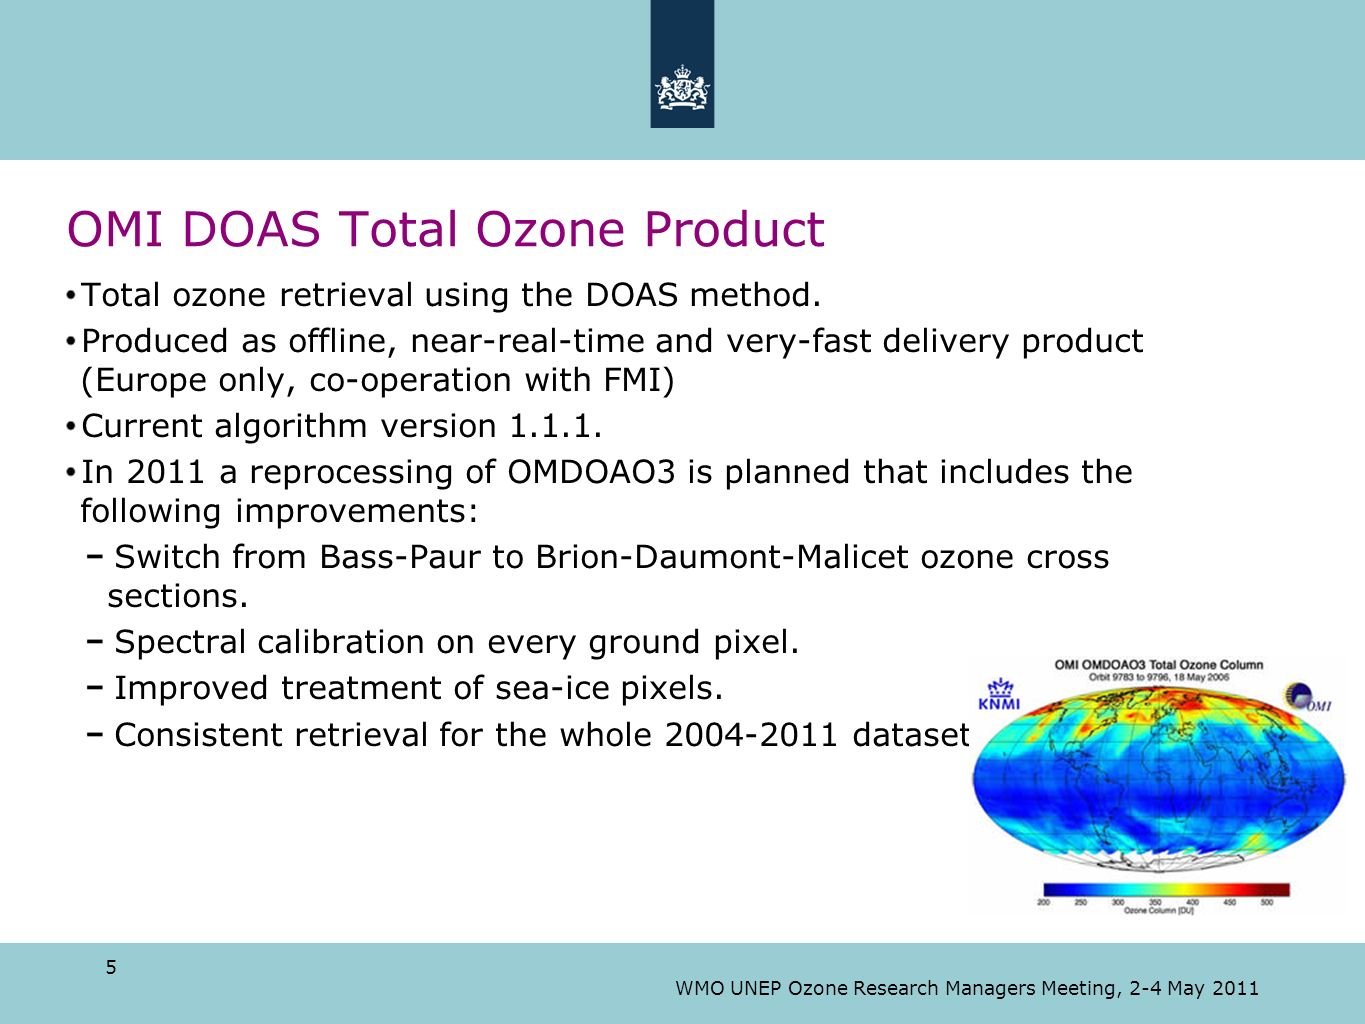 OMI DOAS Total Ozone Product